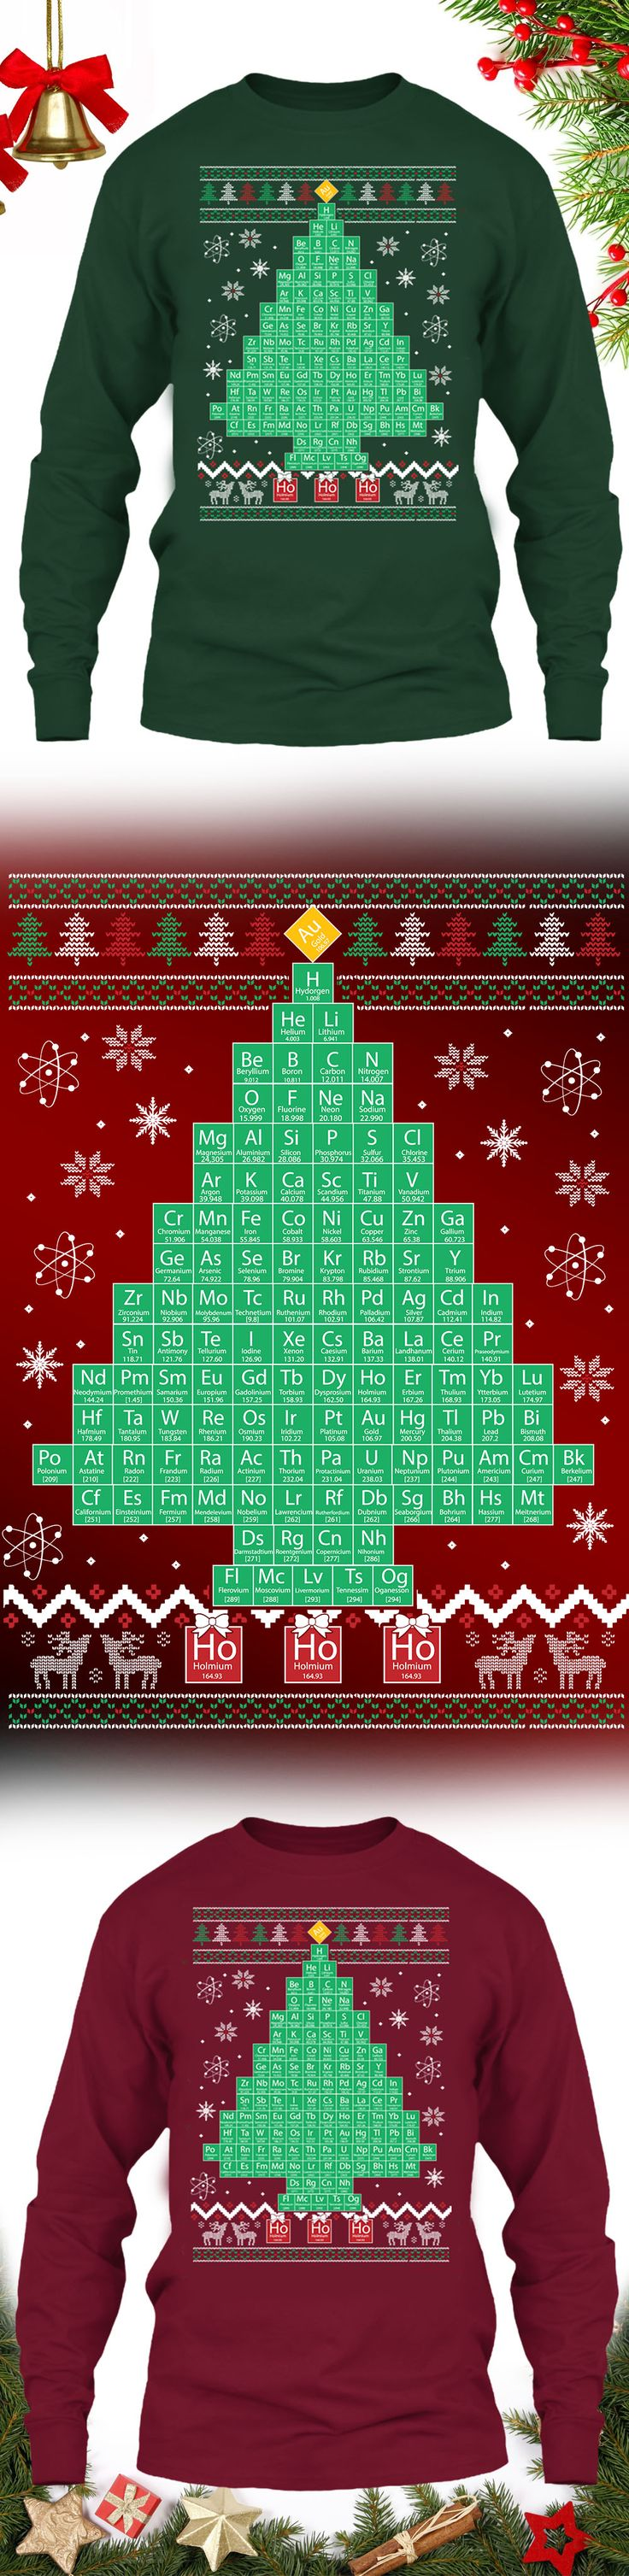 Chemistree Christmas Sweater - Get this limited edition ugly Christmas Sweater just in time for the holidays! Click to buy now!